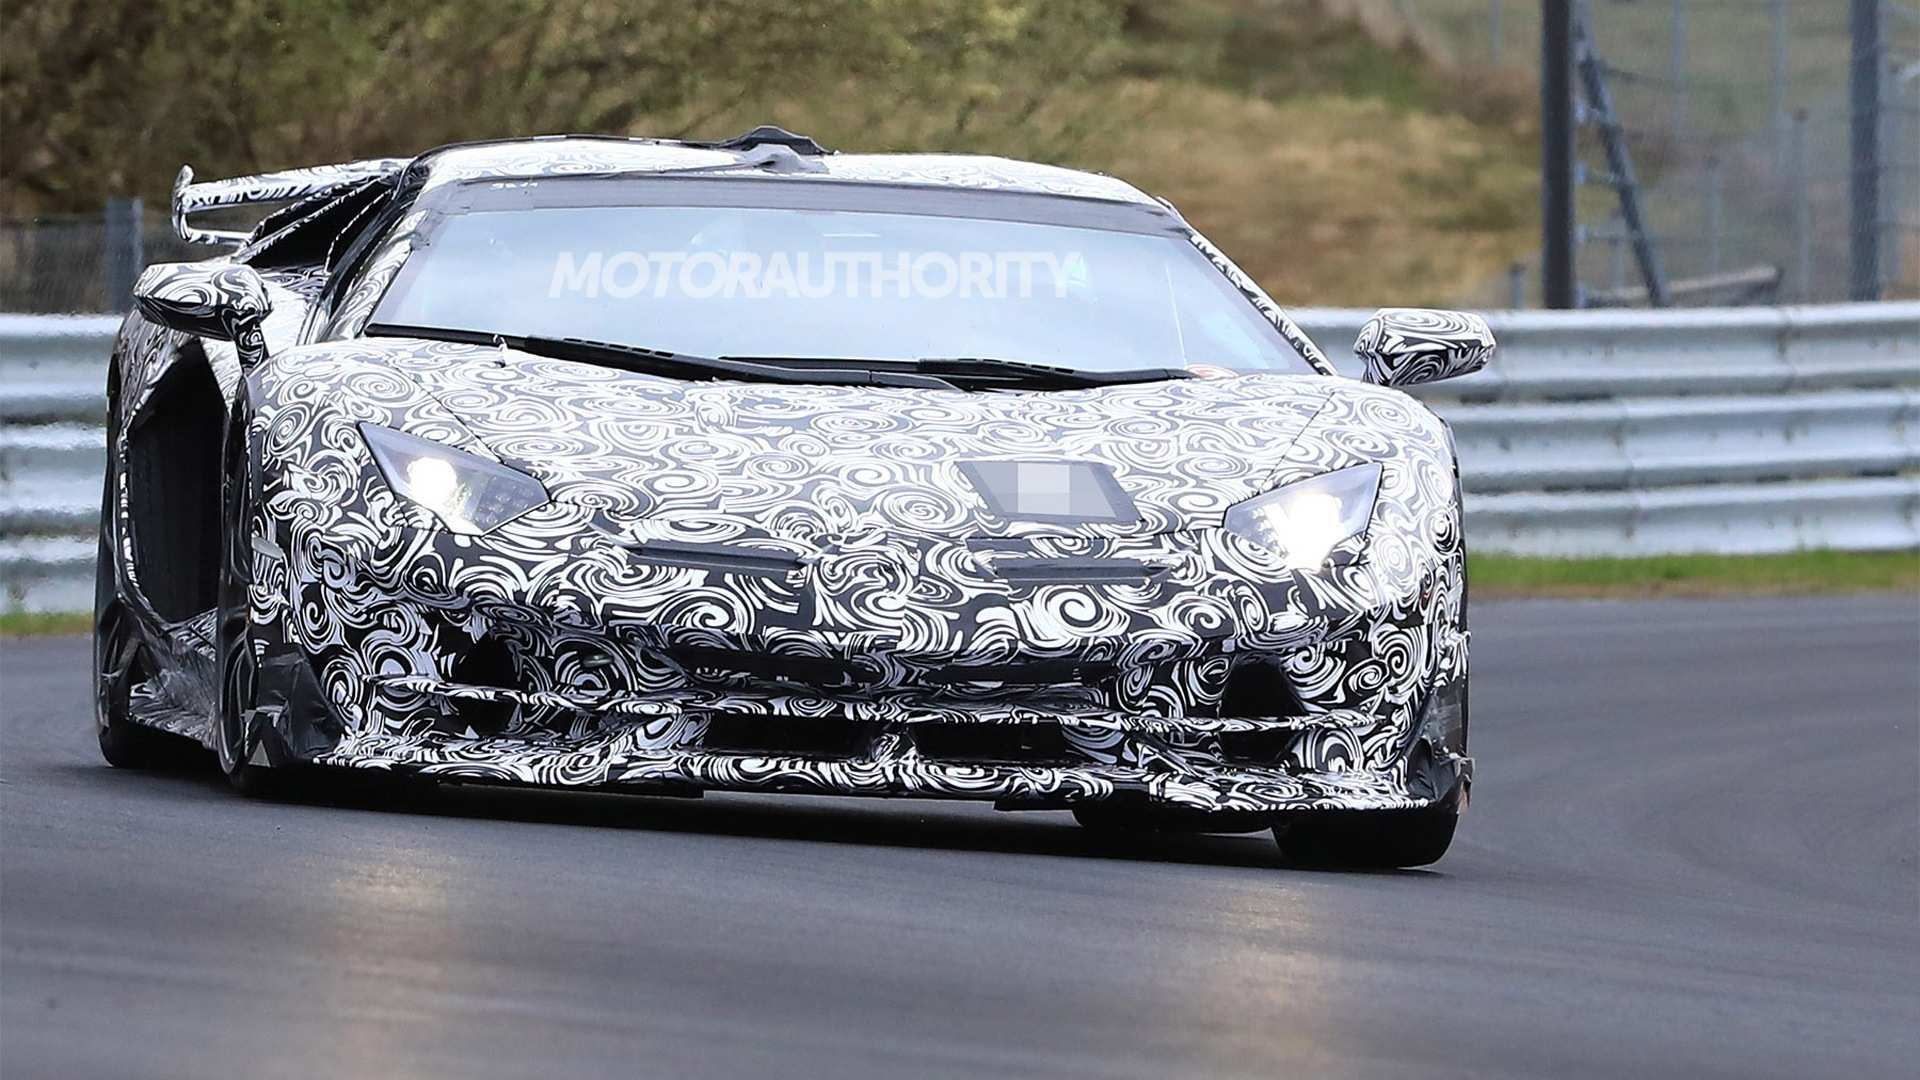 33 Great 2020 Lamborghini Svj Overview for 2020 Lamborghini Svj